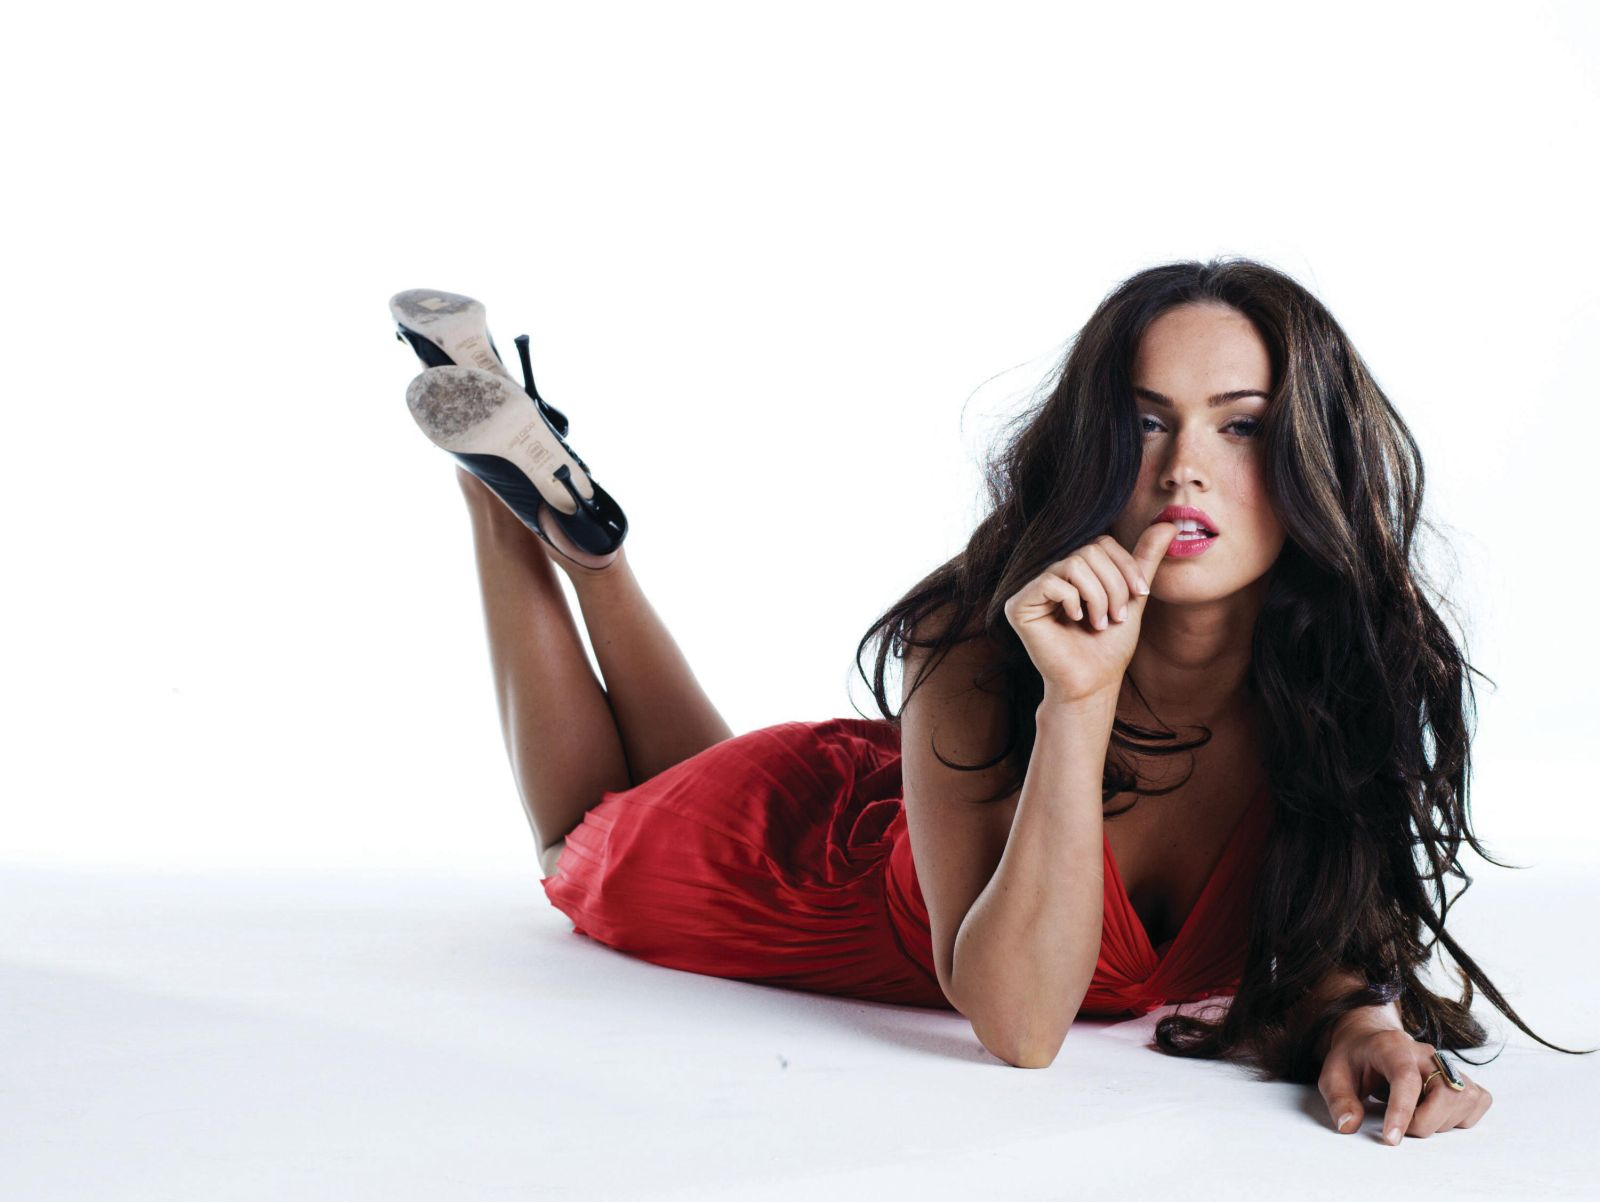 megan_fox_wallpaper_006